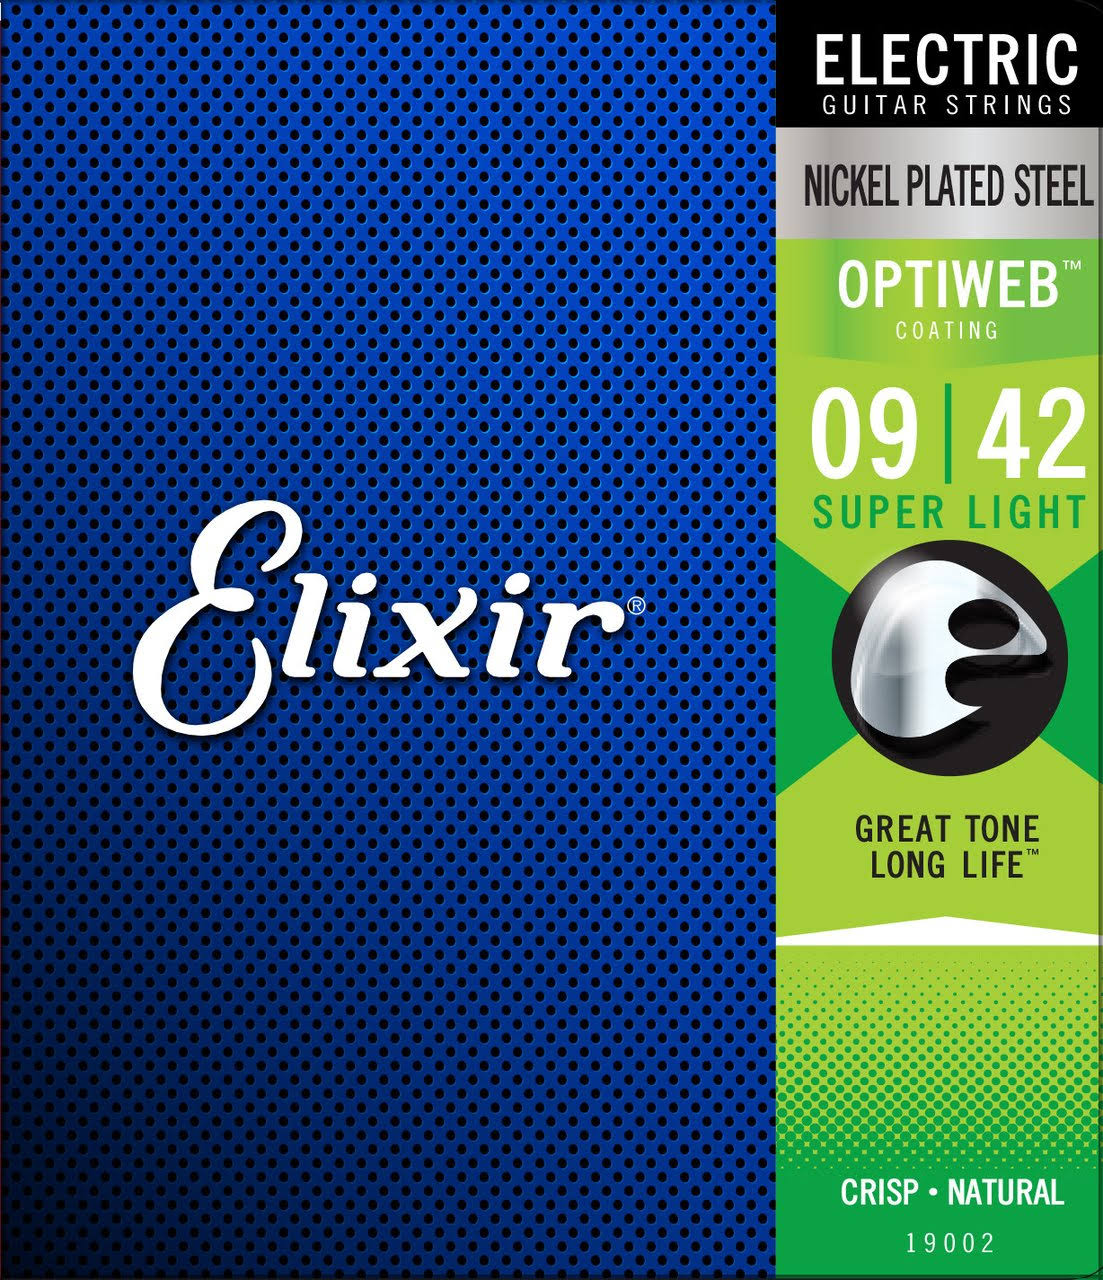 Elixir 19002 Optiweb Electric Guitar Strings Super Light 9-42